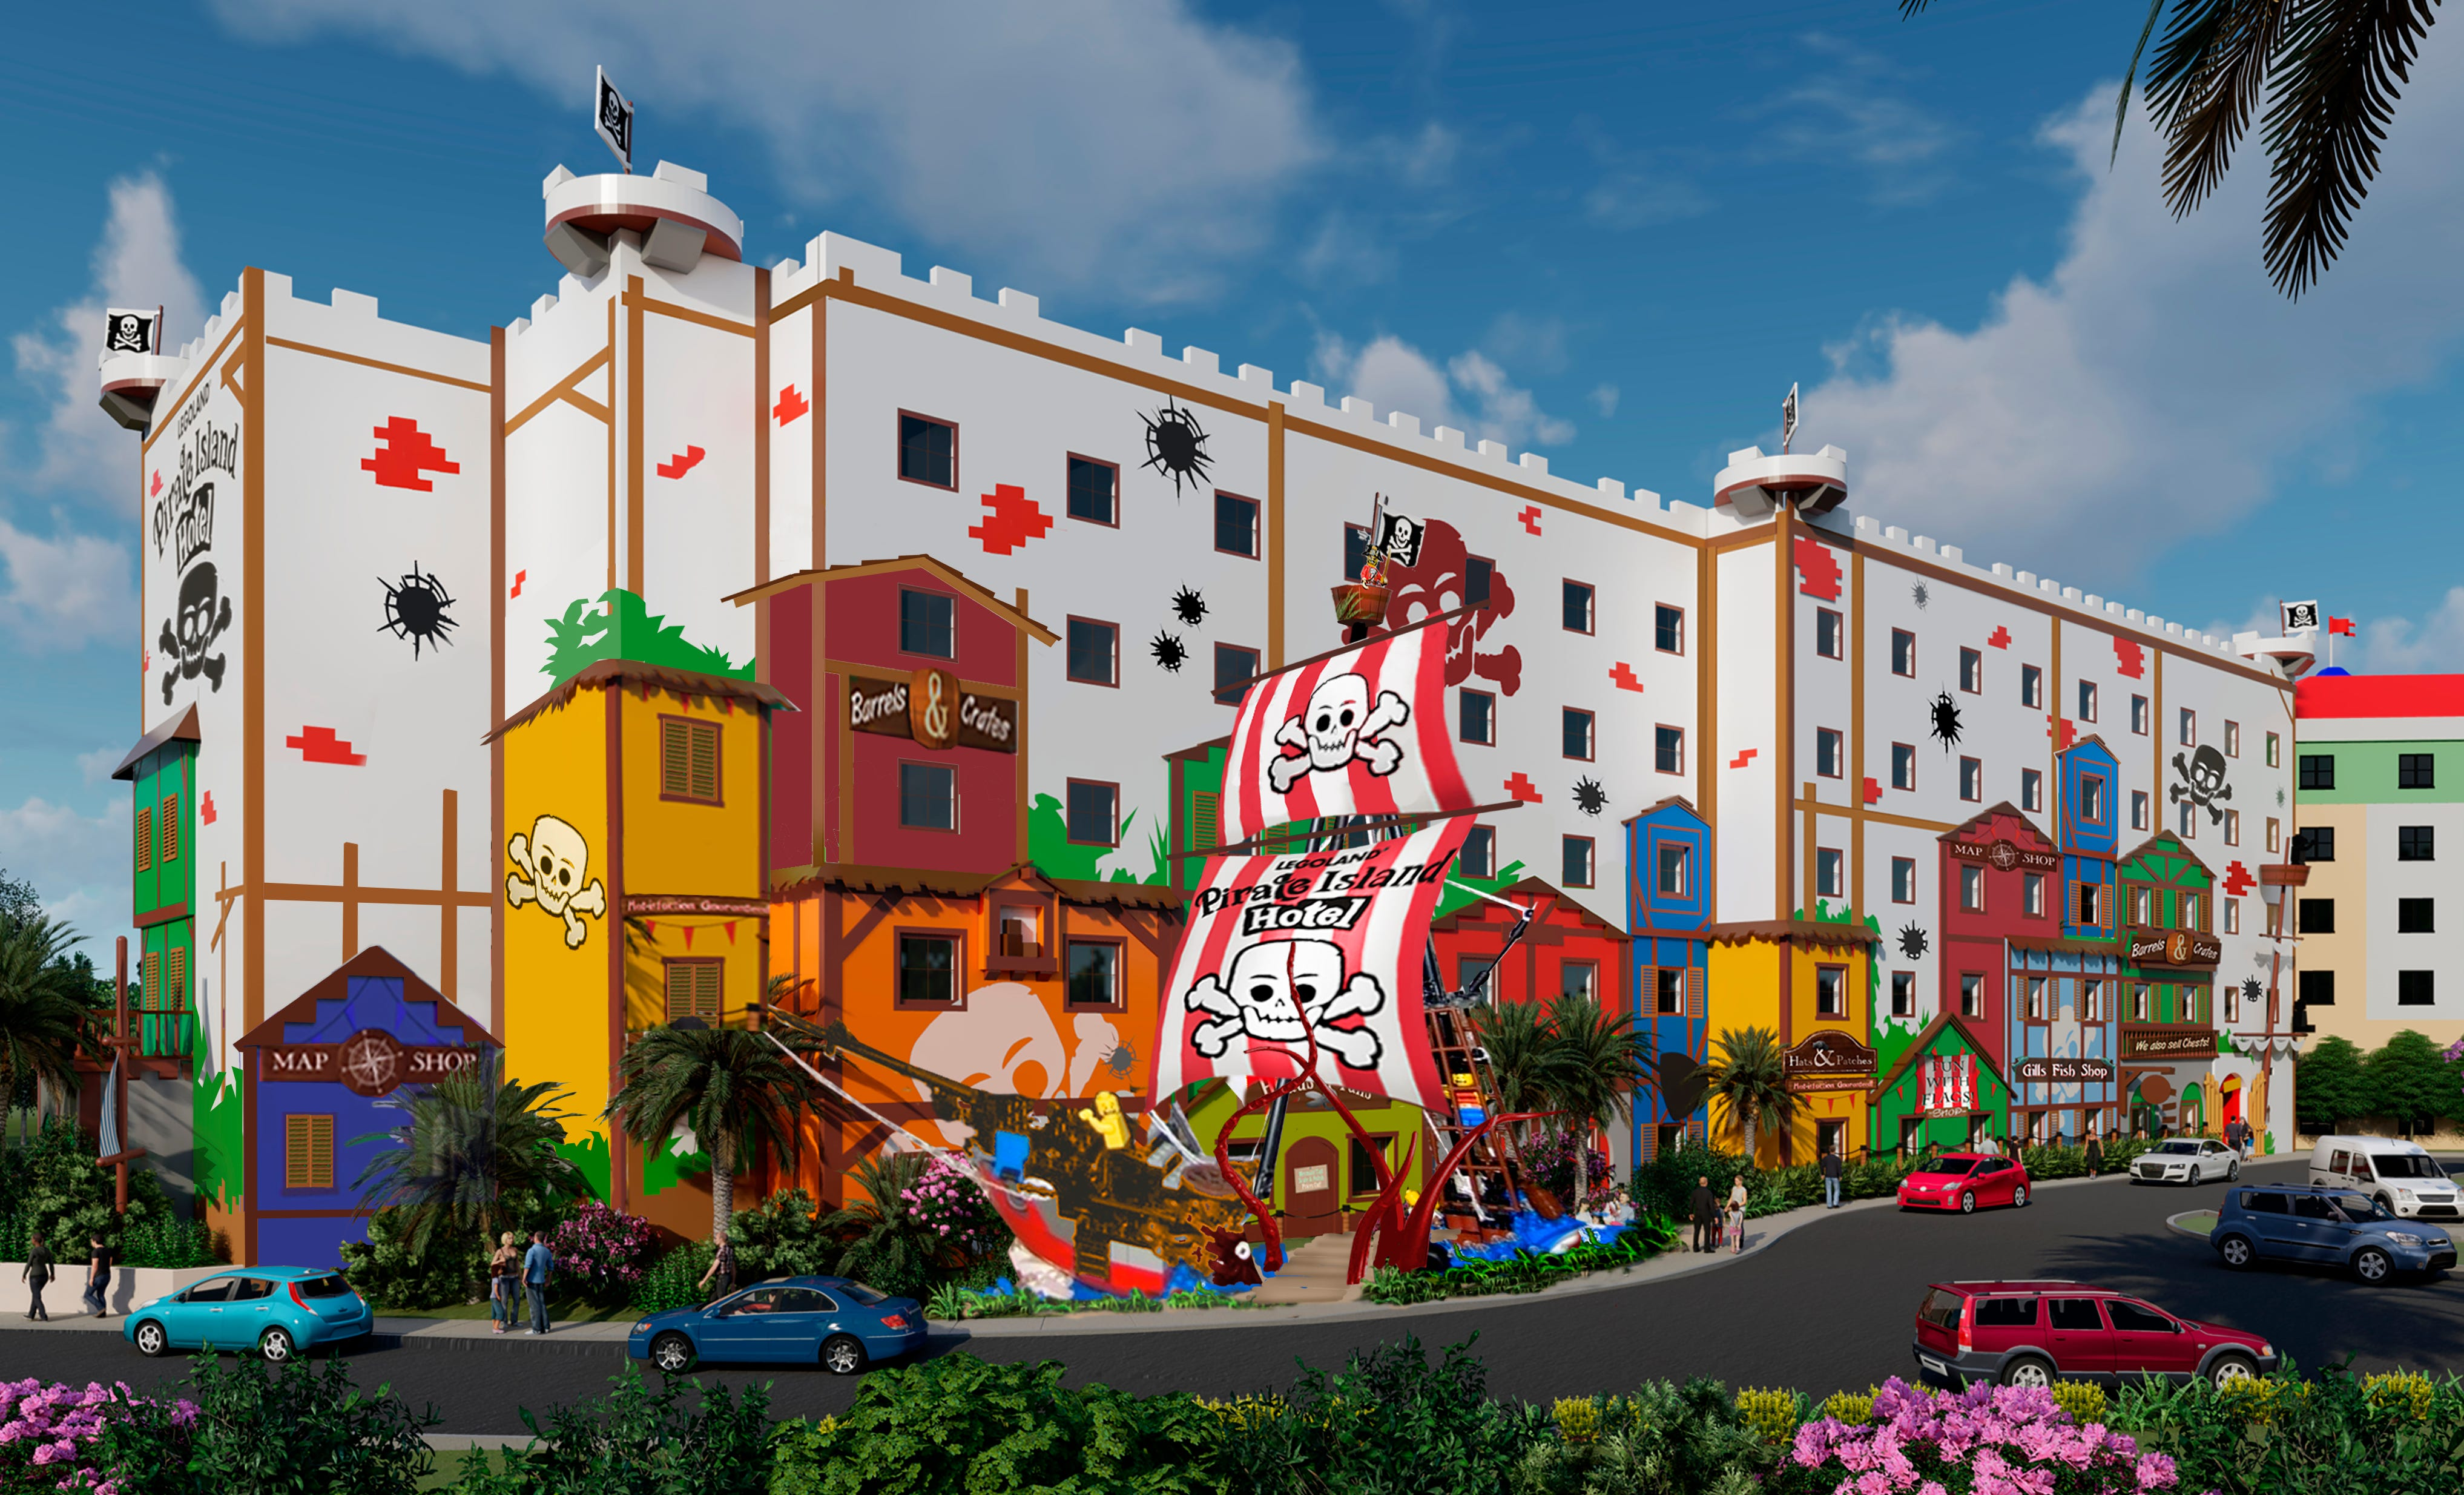 Construction is underway for the Legoland Pirate Island Hotel, seen here in a rendering, which will feature 150 pirate-themed rooms spread out over five floors, a private pool and minigolf.